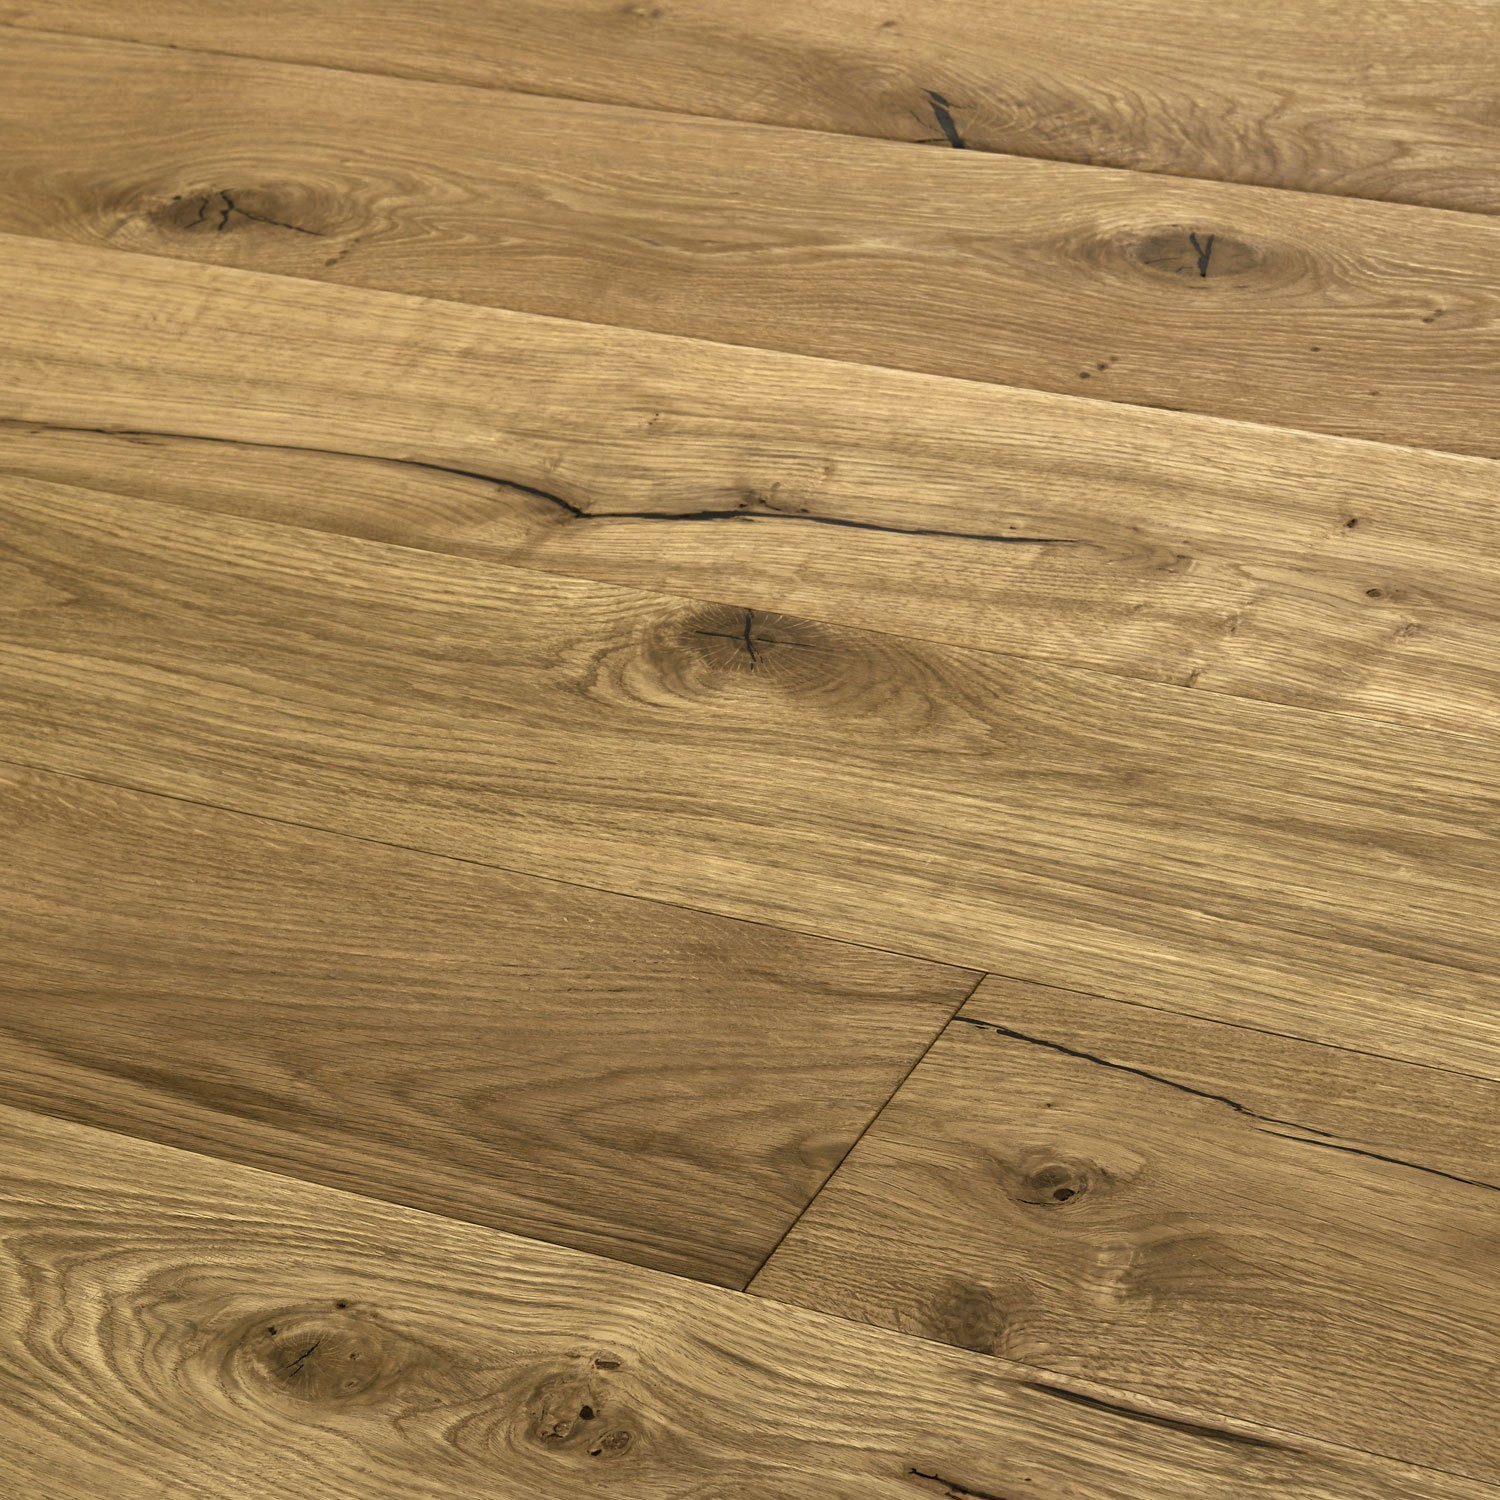 Real oak flooring kahrs artisan collection wheat oak wheat real wood ... NIWEXPR